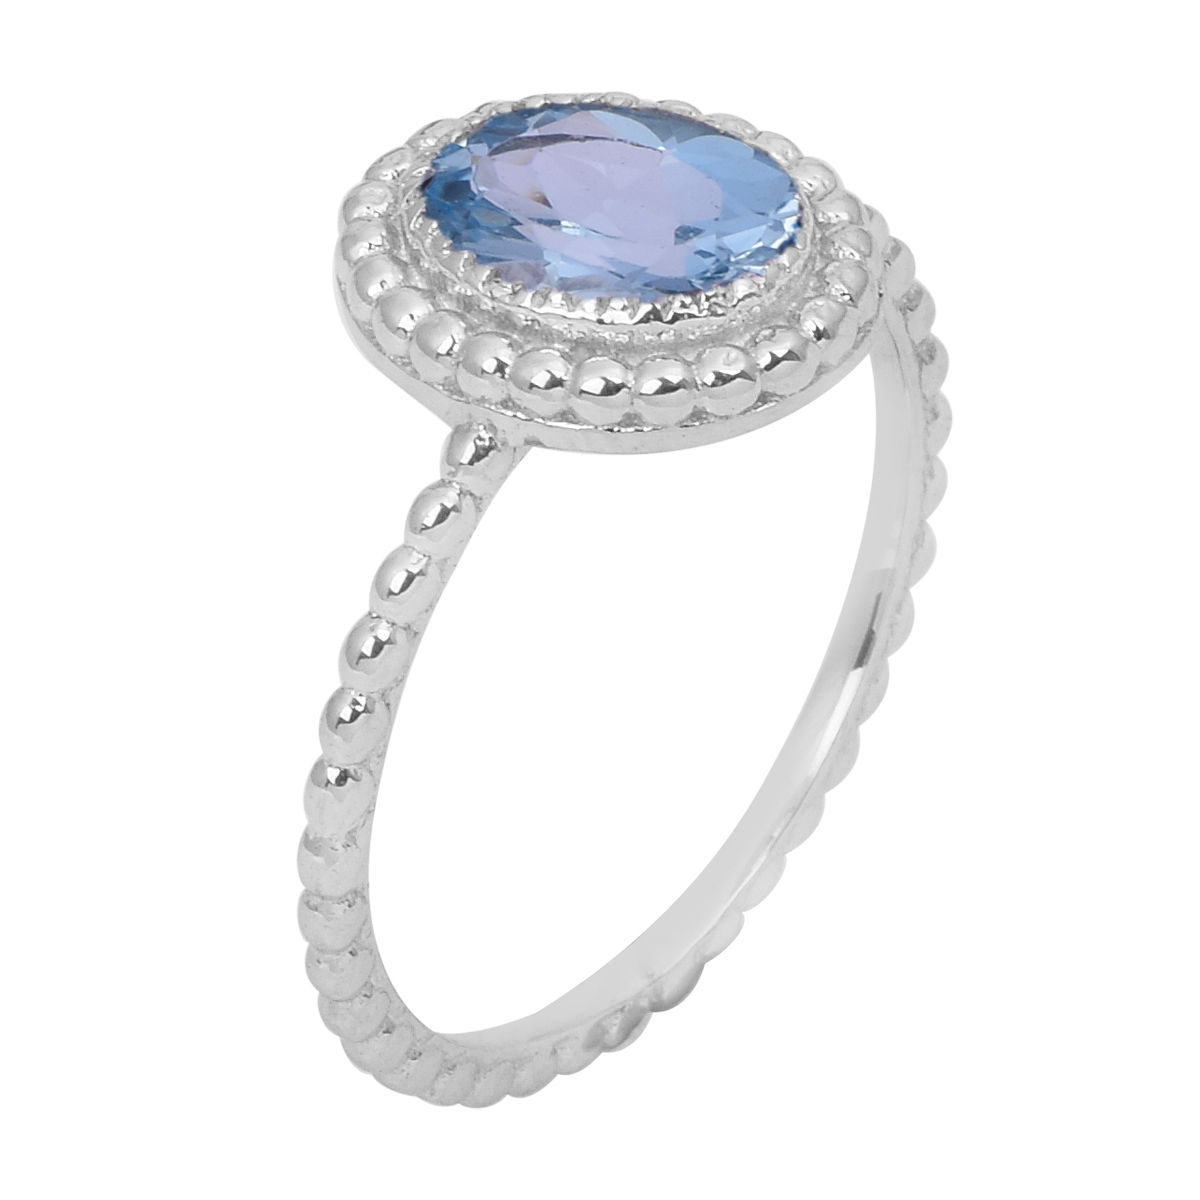 Gorgeous Oval Blue Topaz Solid 925 Sterling Silver Jewelry Ring Sz 7 SHRI0771